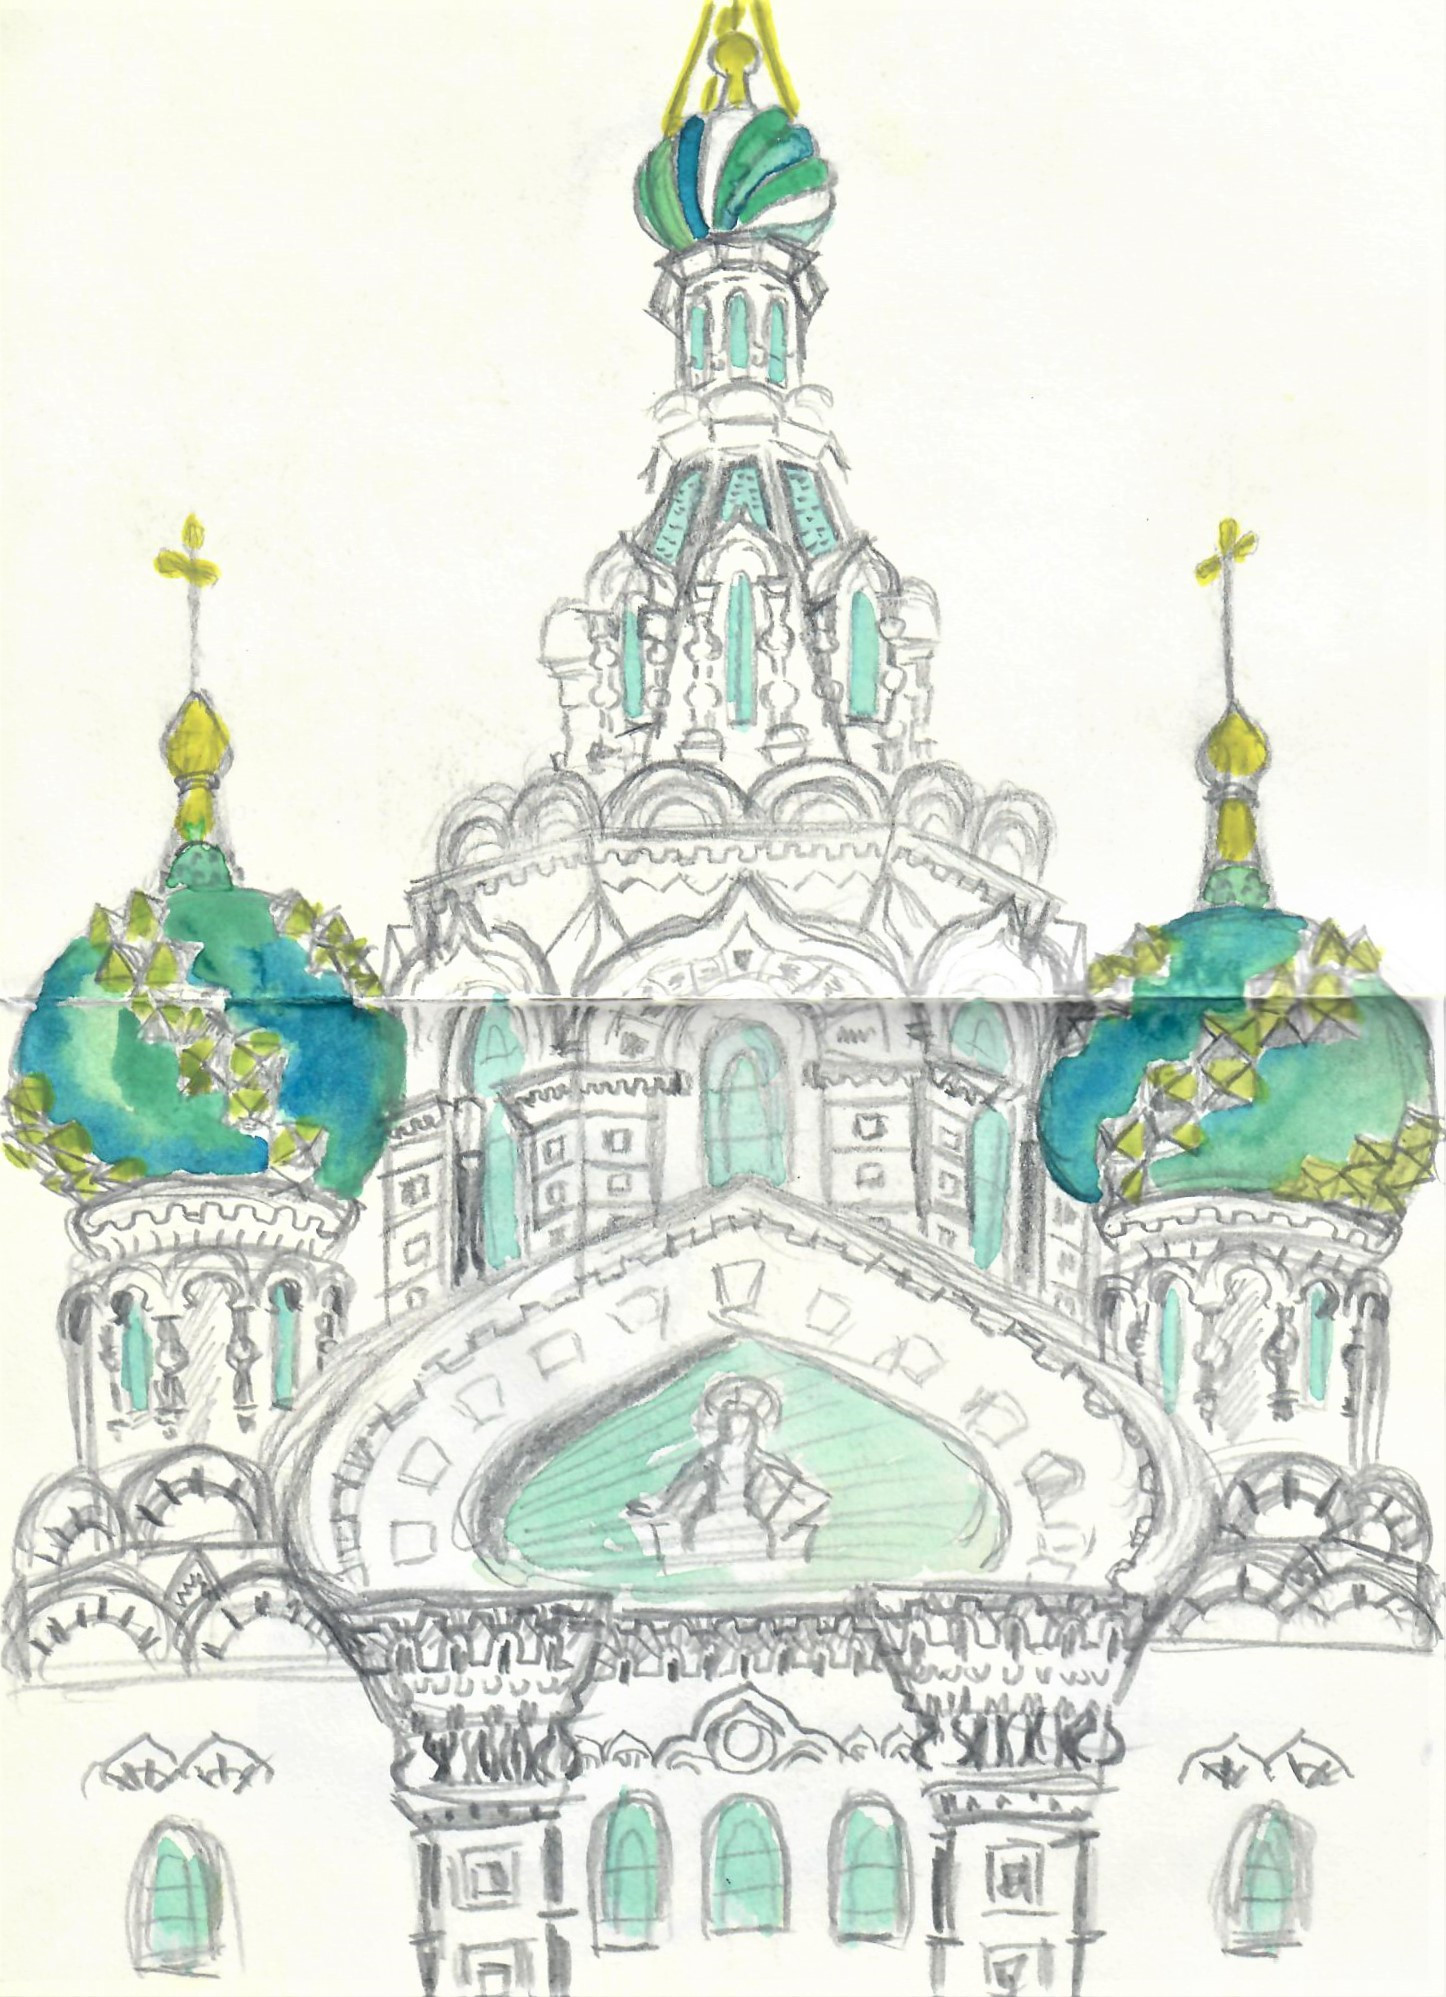 Pencil sketch of decorative building in Saint Petersburg, Russia